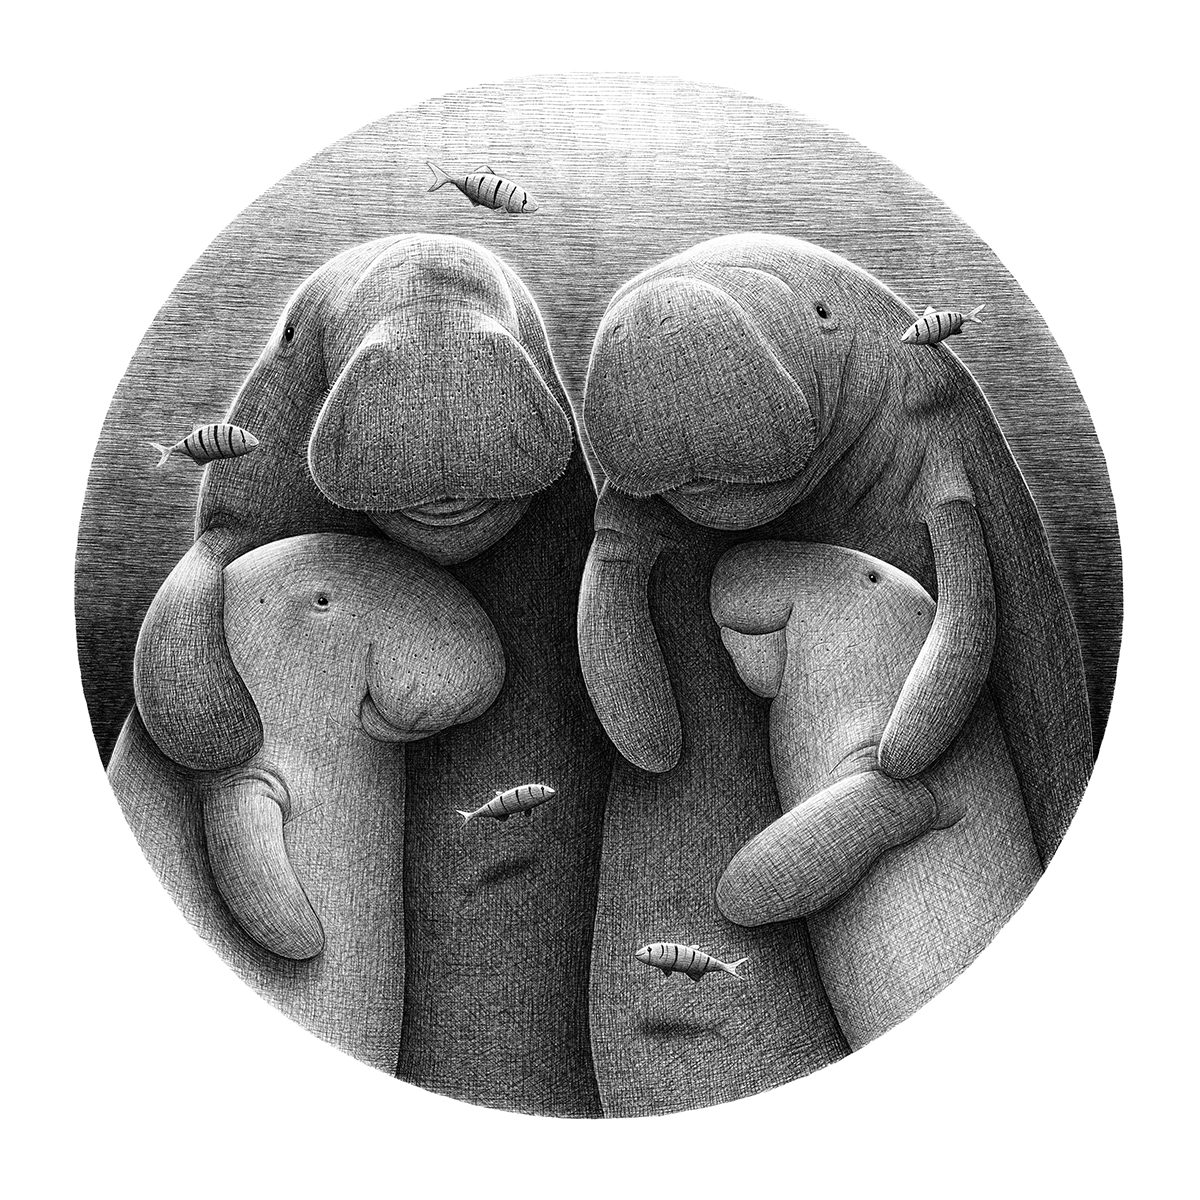 Dugong Family black and white illustration by drawingeggen